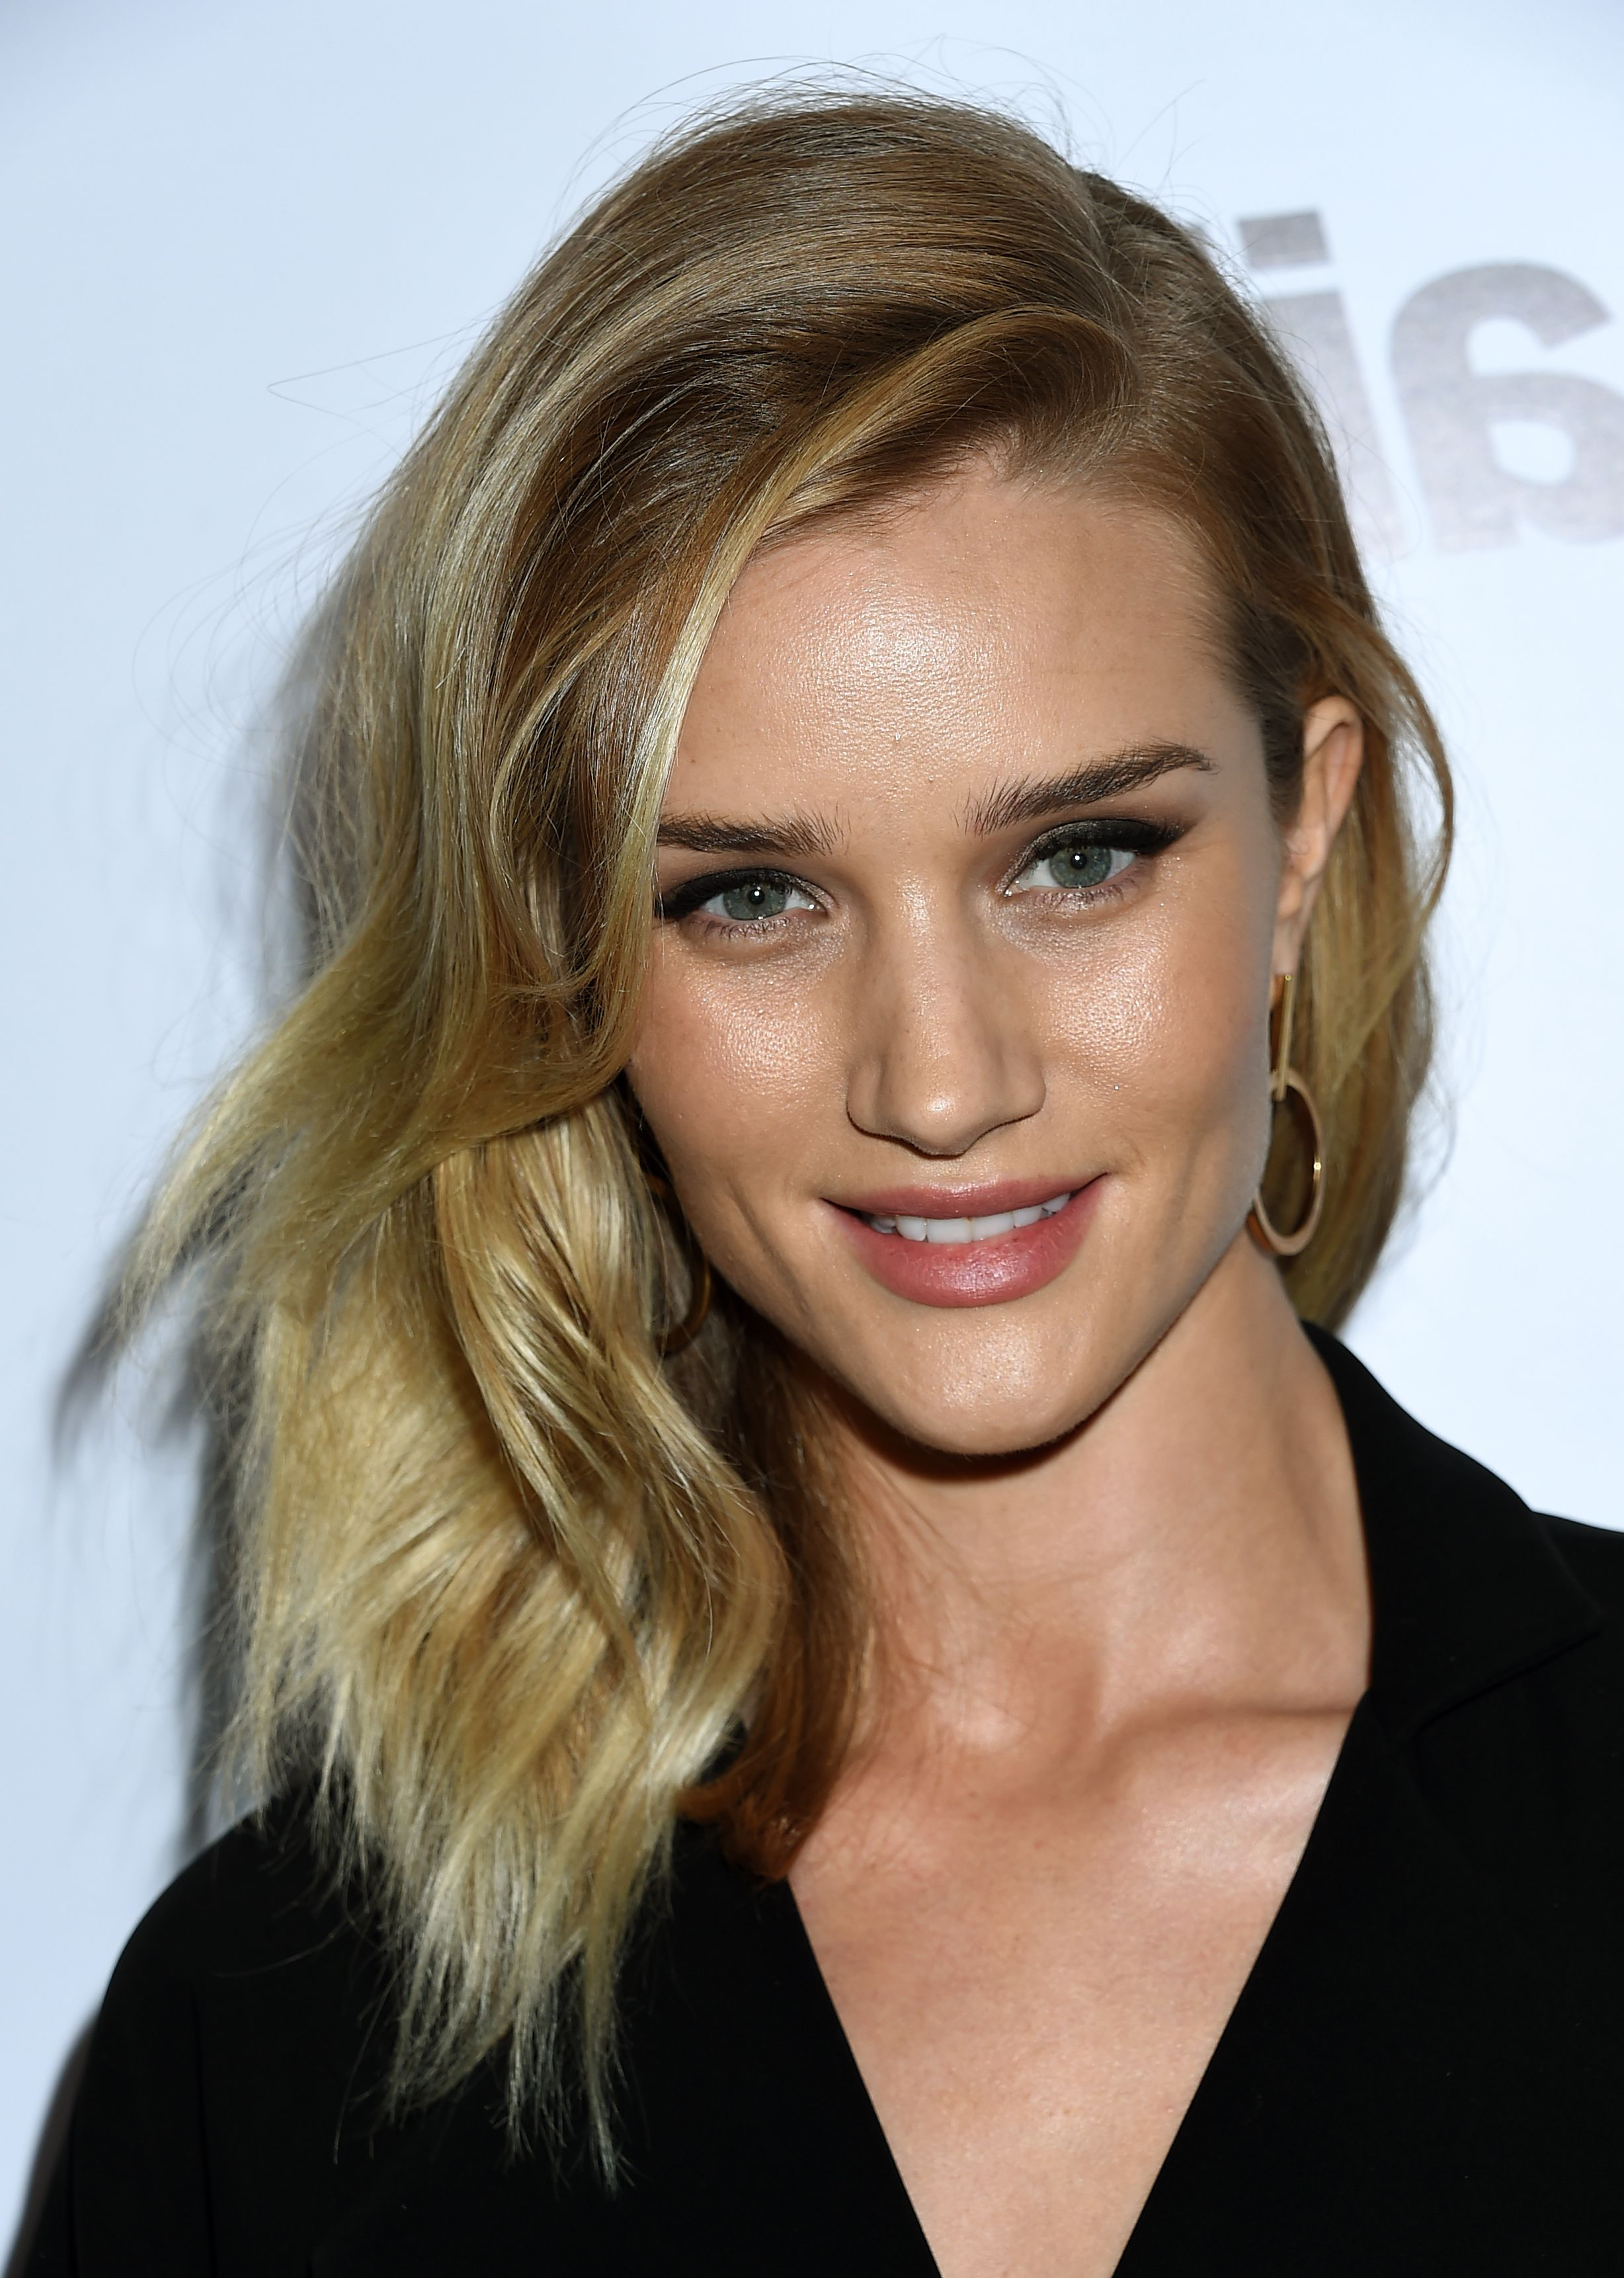 The 13 Best Hairstyles For Square Faces In Short Haircuts For Square Face (View 14 of 25)